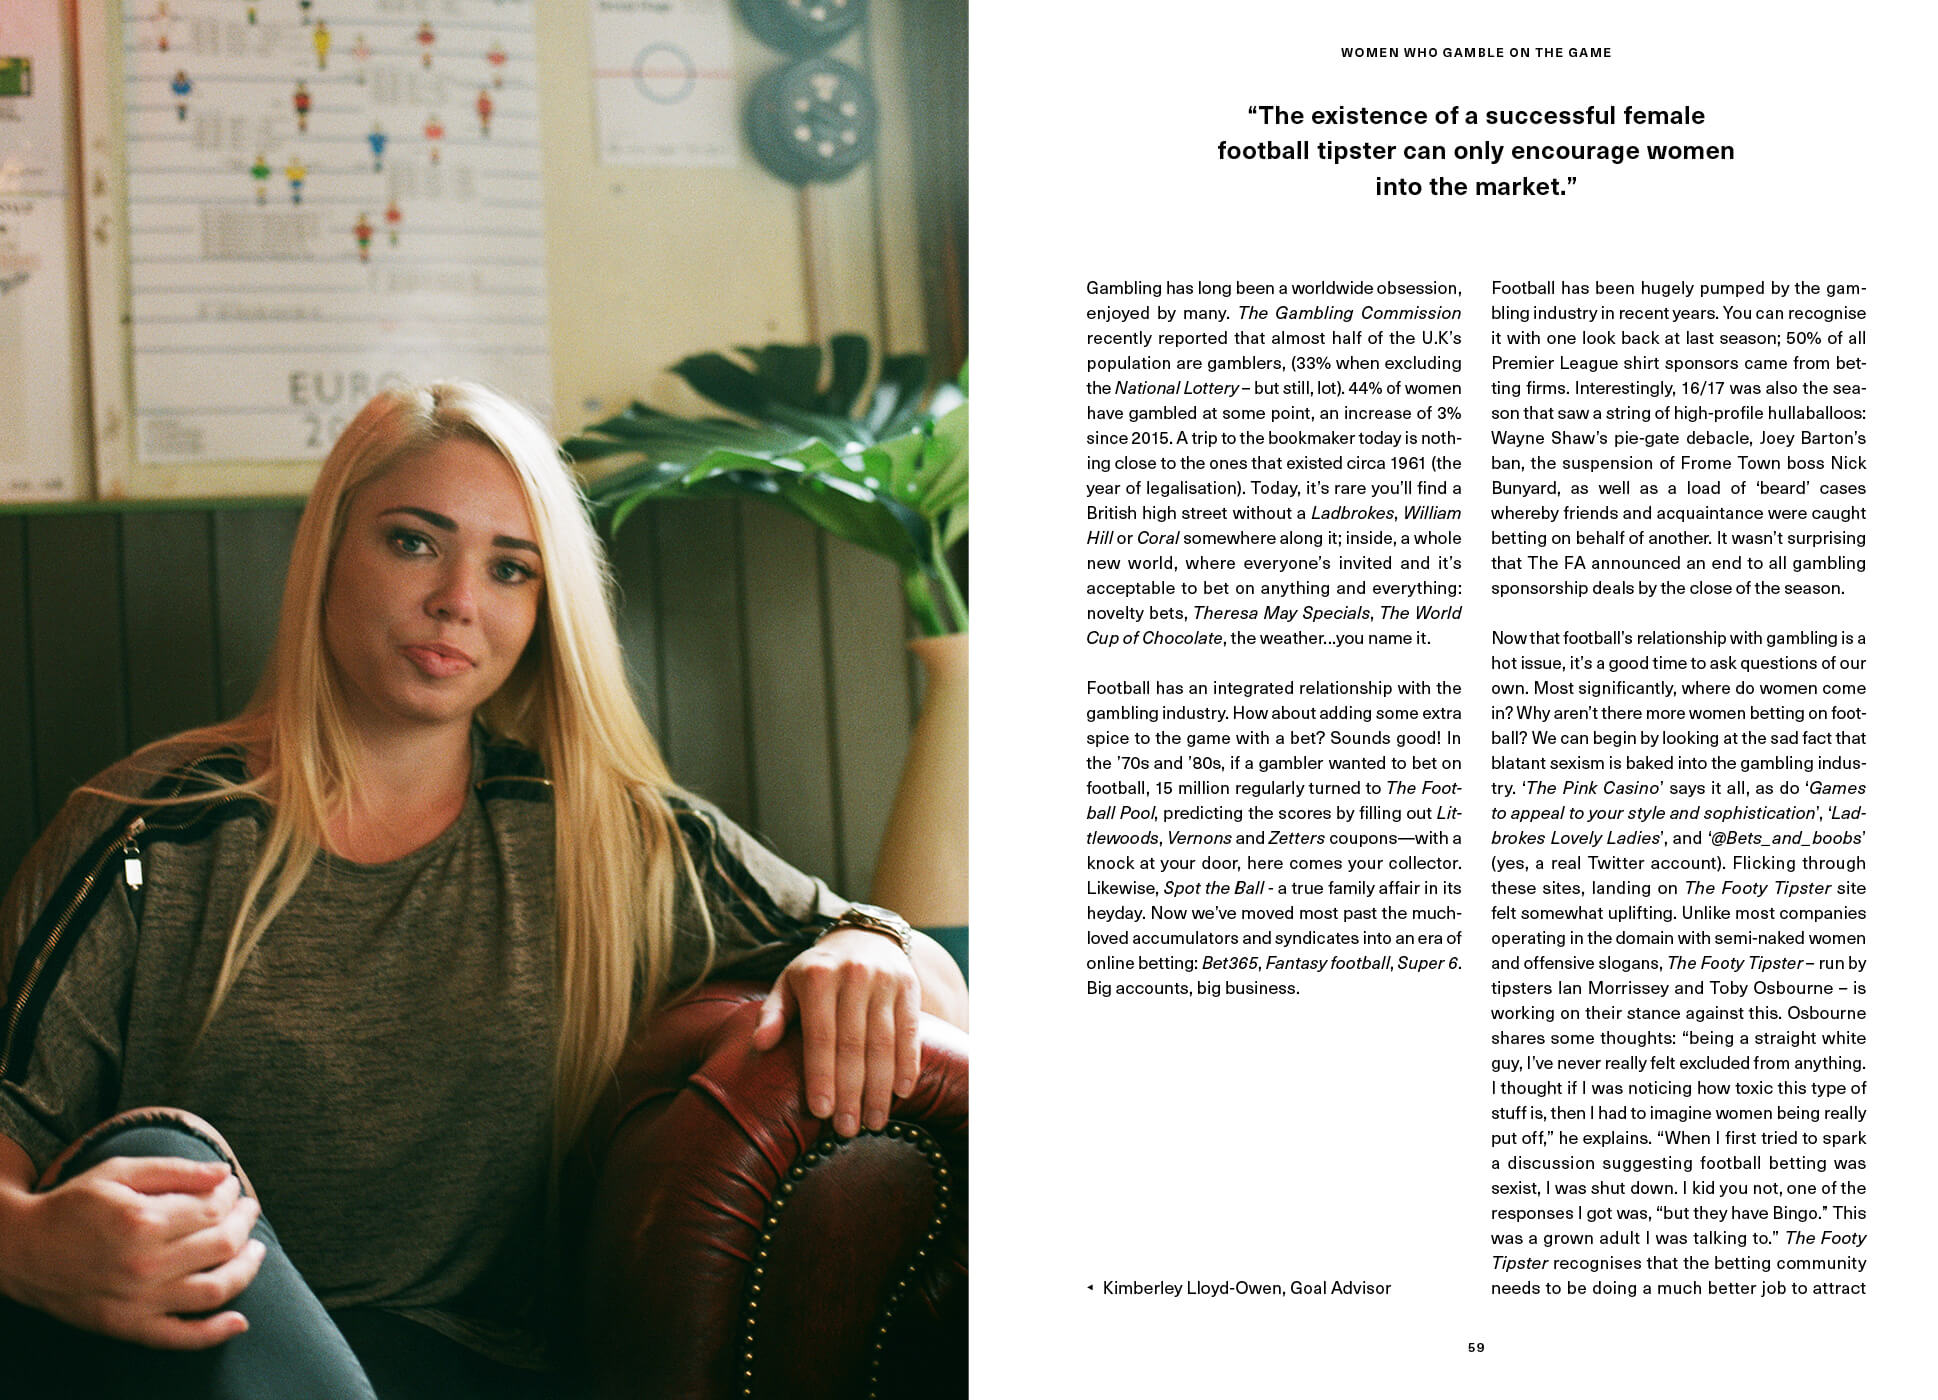 Second page of Women gamble on the game SEASON interview